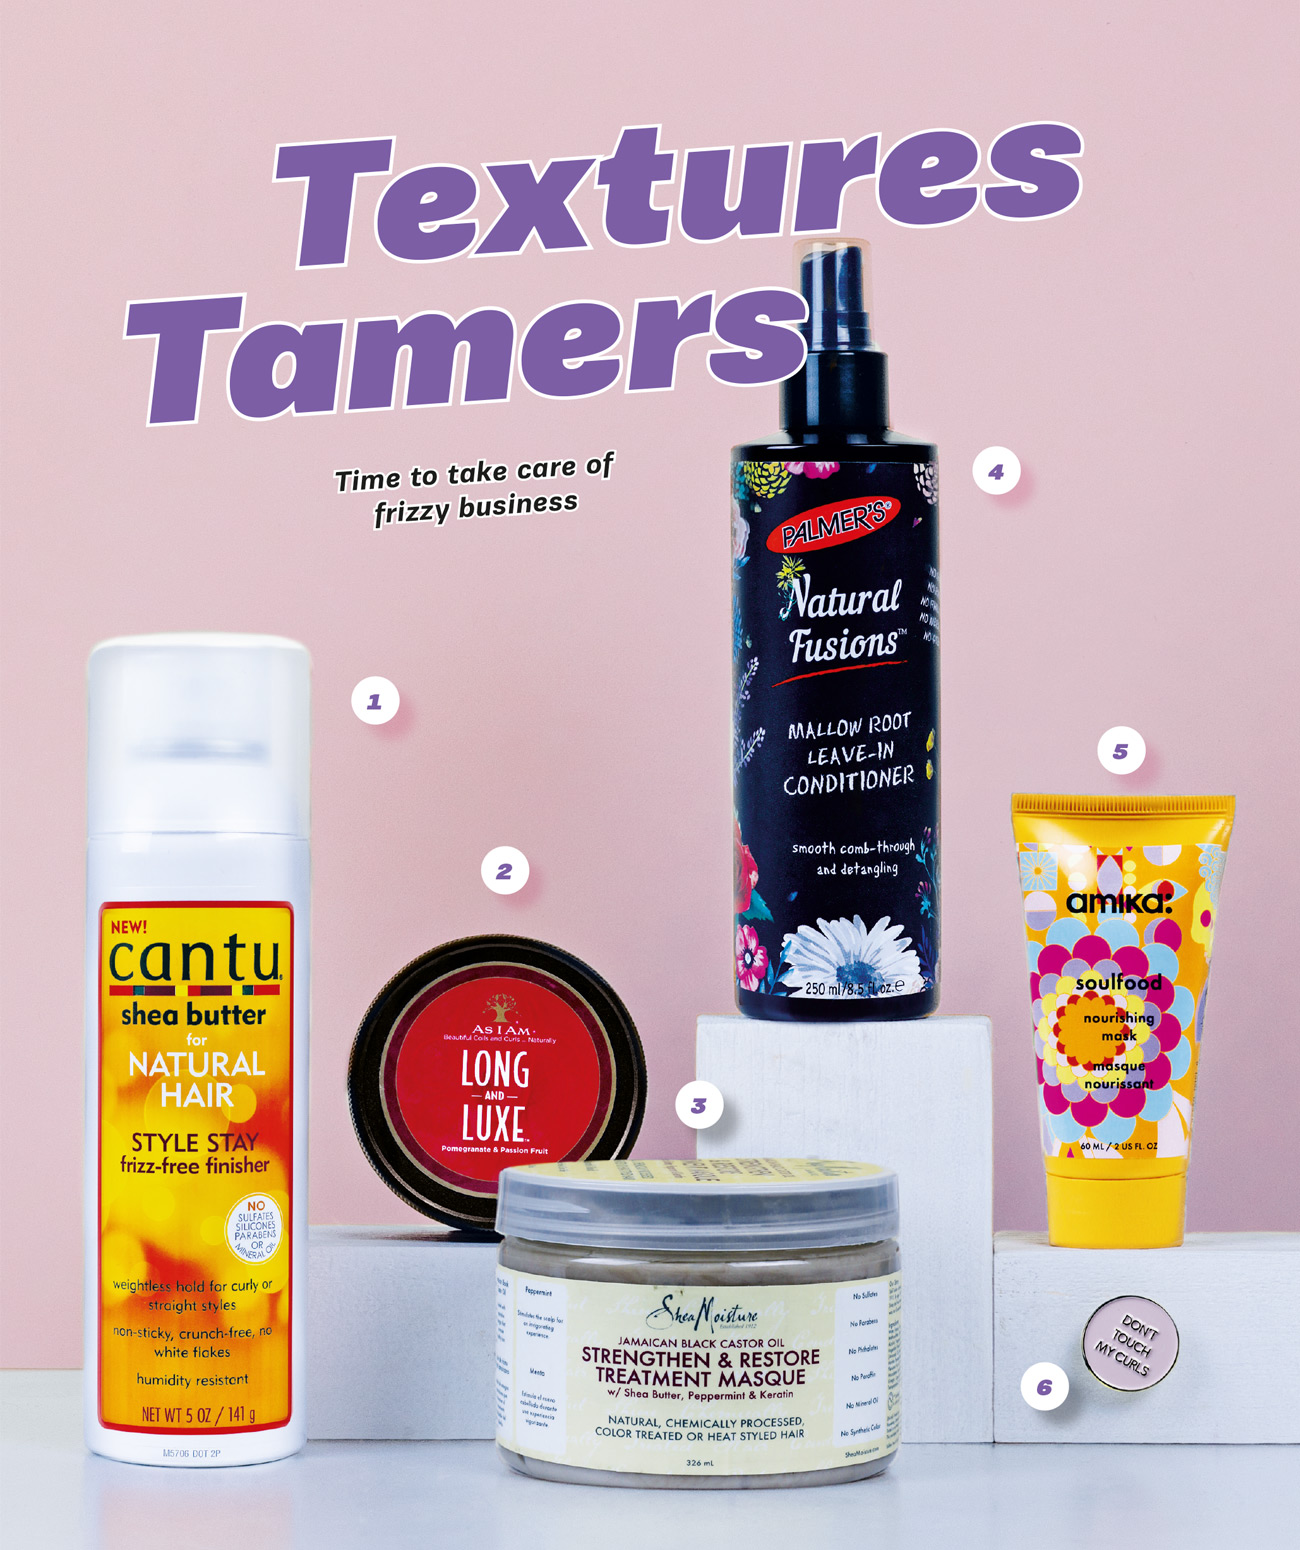 Textures tamers